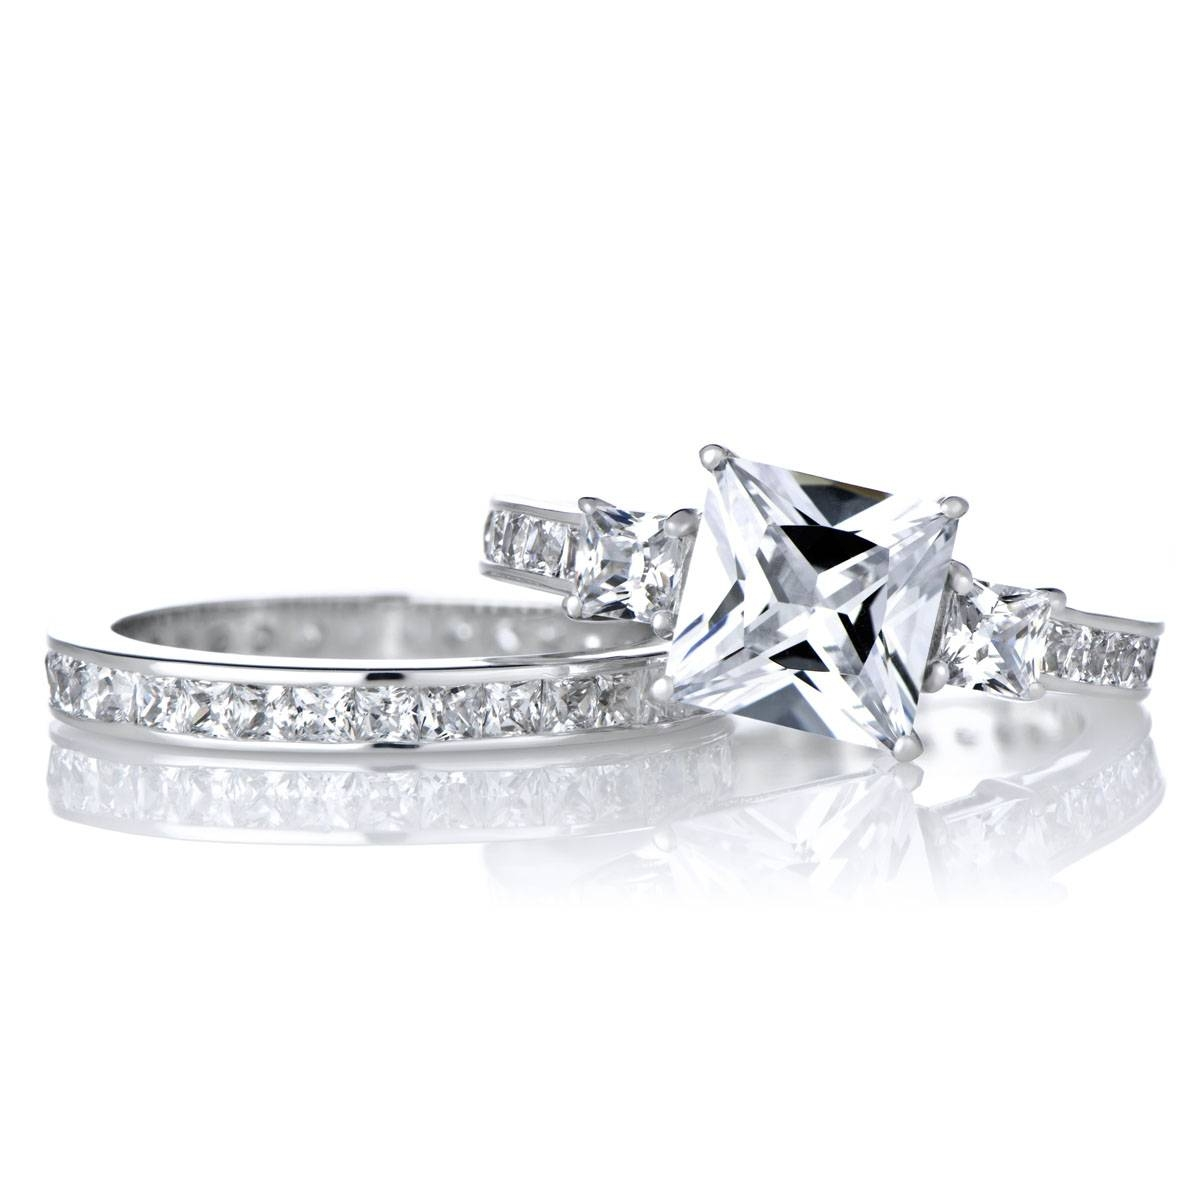 Engagement Ring Set – 2.5 Carat Princess Cut Cz Throughout Silver Princess Cut Diamond Engagement Rings (Gallery 9 of 15)